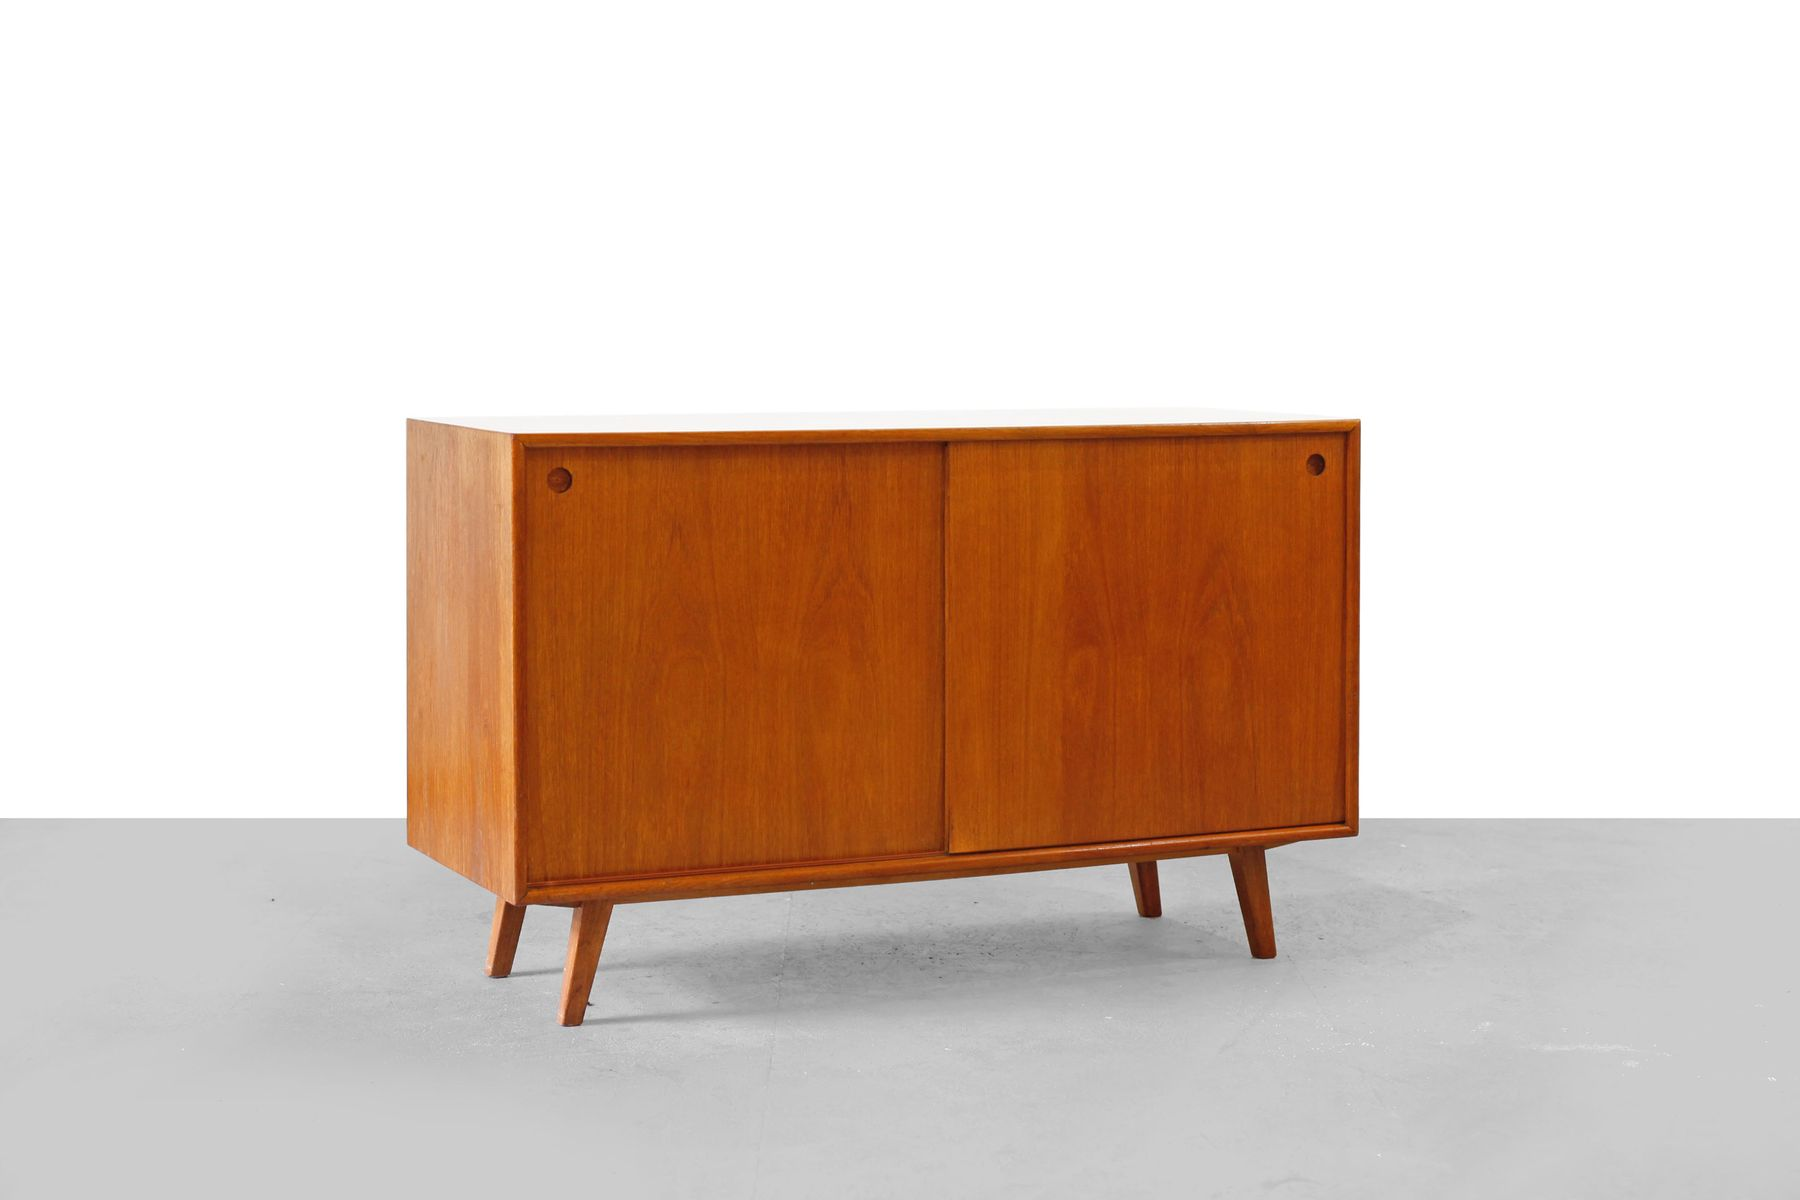 Mid century walnut veneer sideboard 1950s for sale at pamono - Sideboard mid century ...